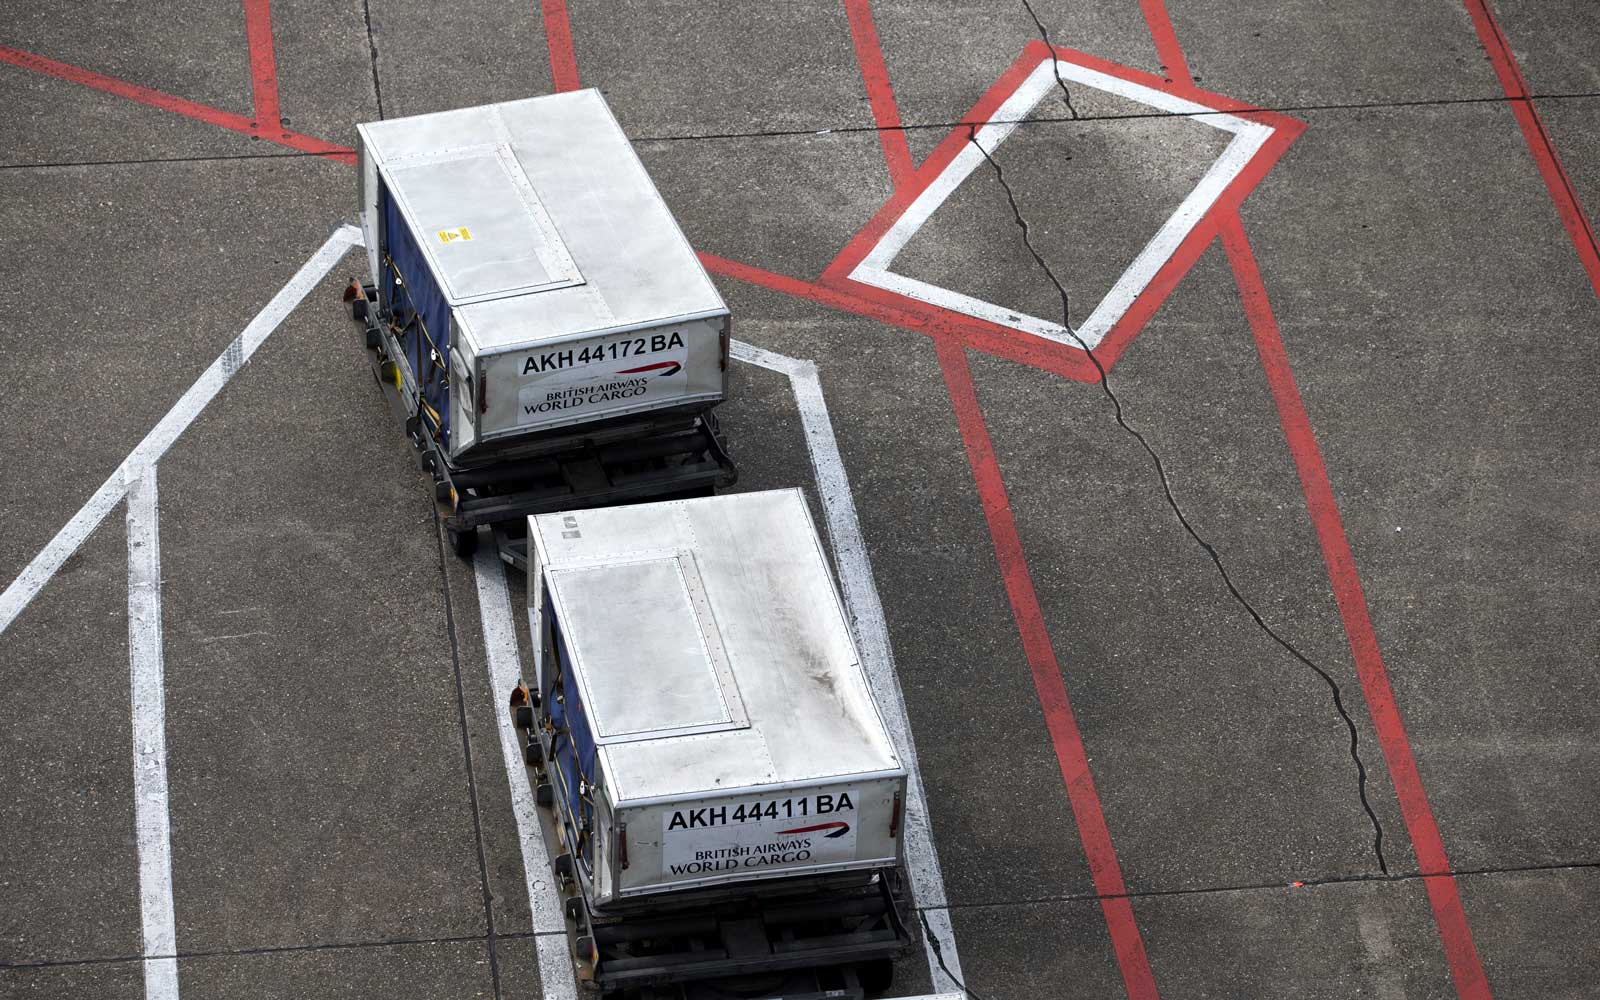 Airplane cargo on tarmac